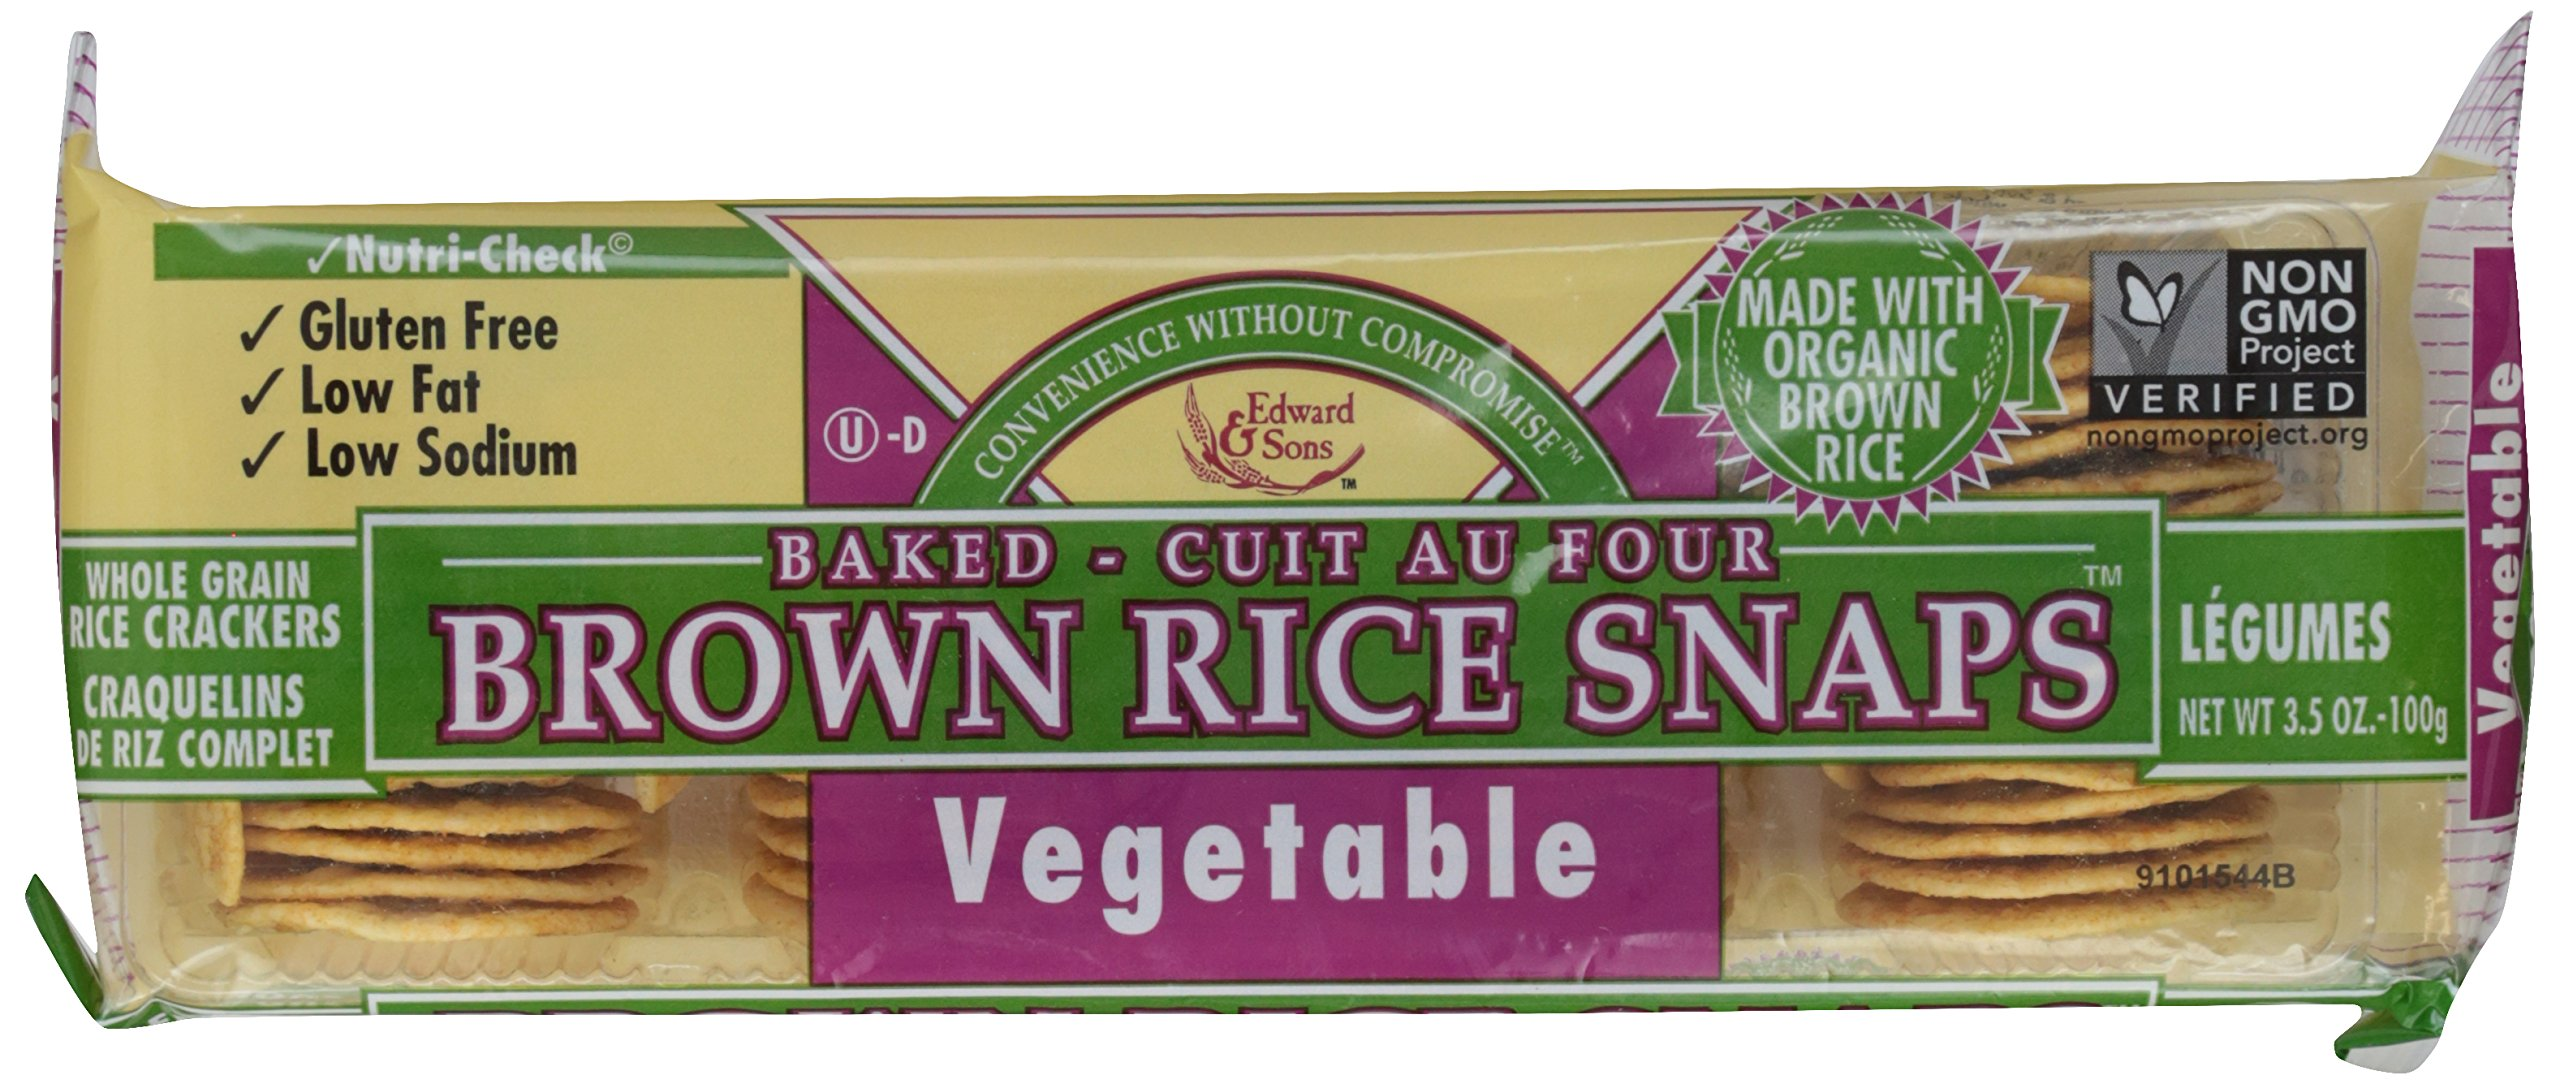 Edward & Sons, Organic Brown Rice Snaps Crackers, Vegetable, 3.5 oz